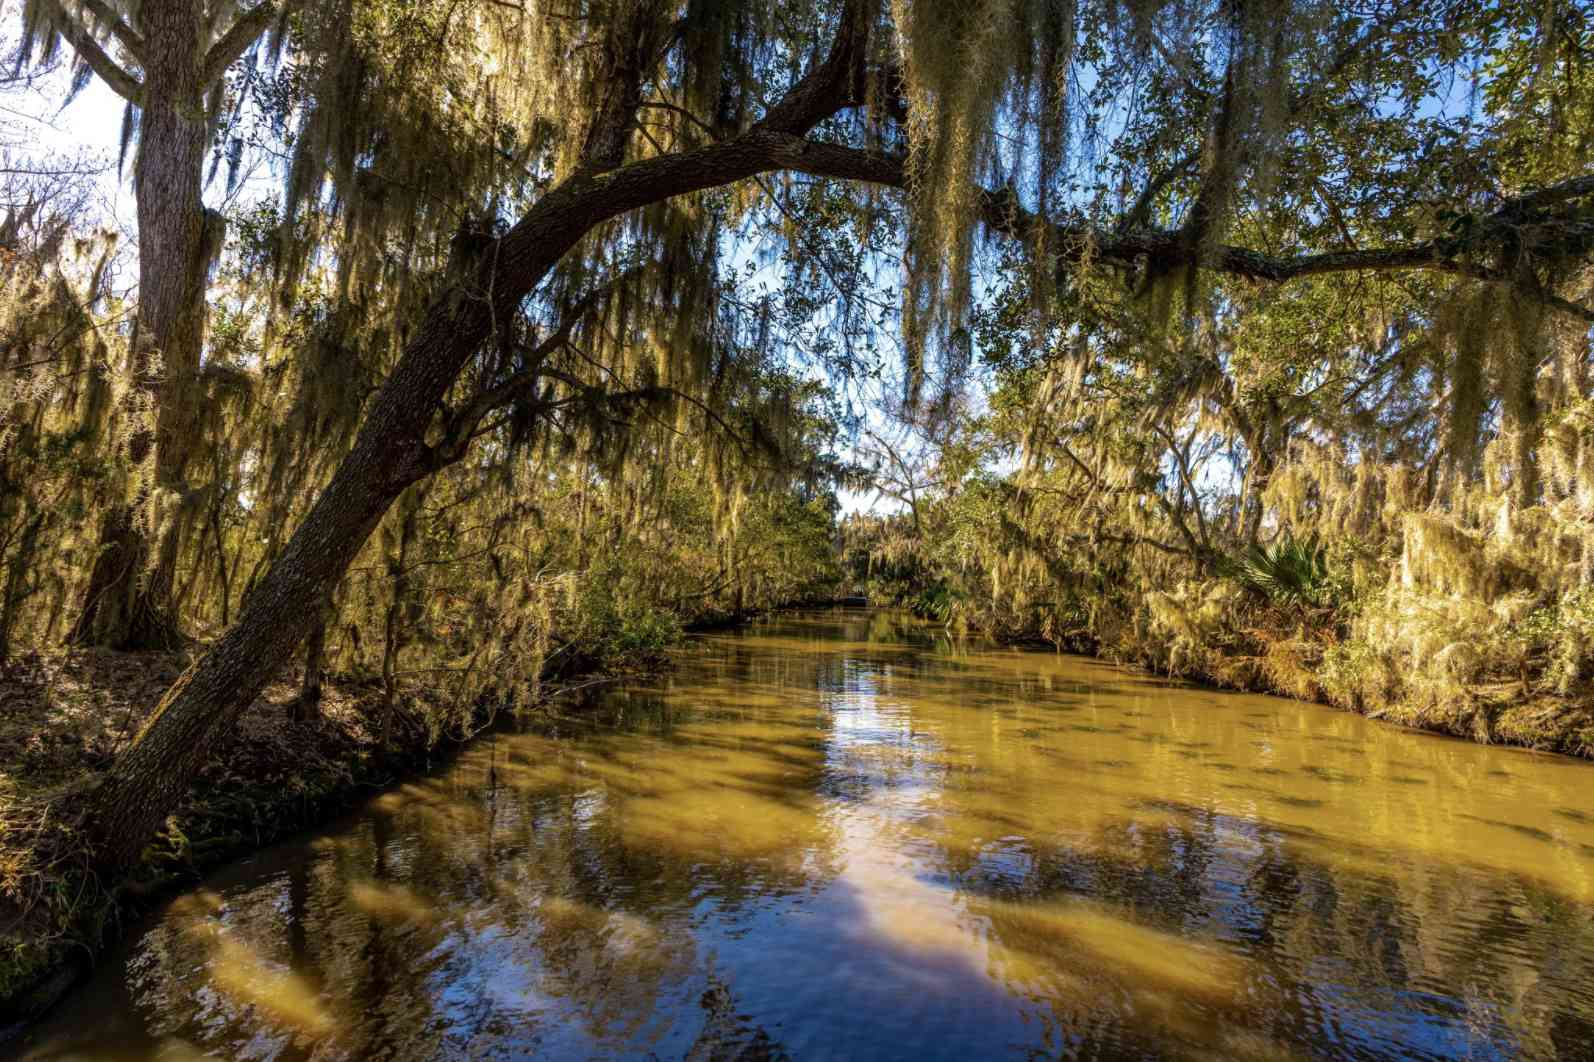 Oak trees over the swamp in New Orleans